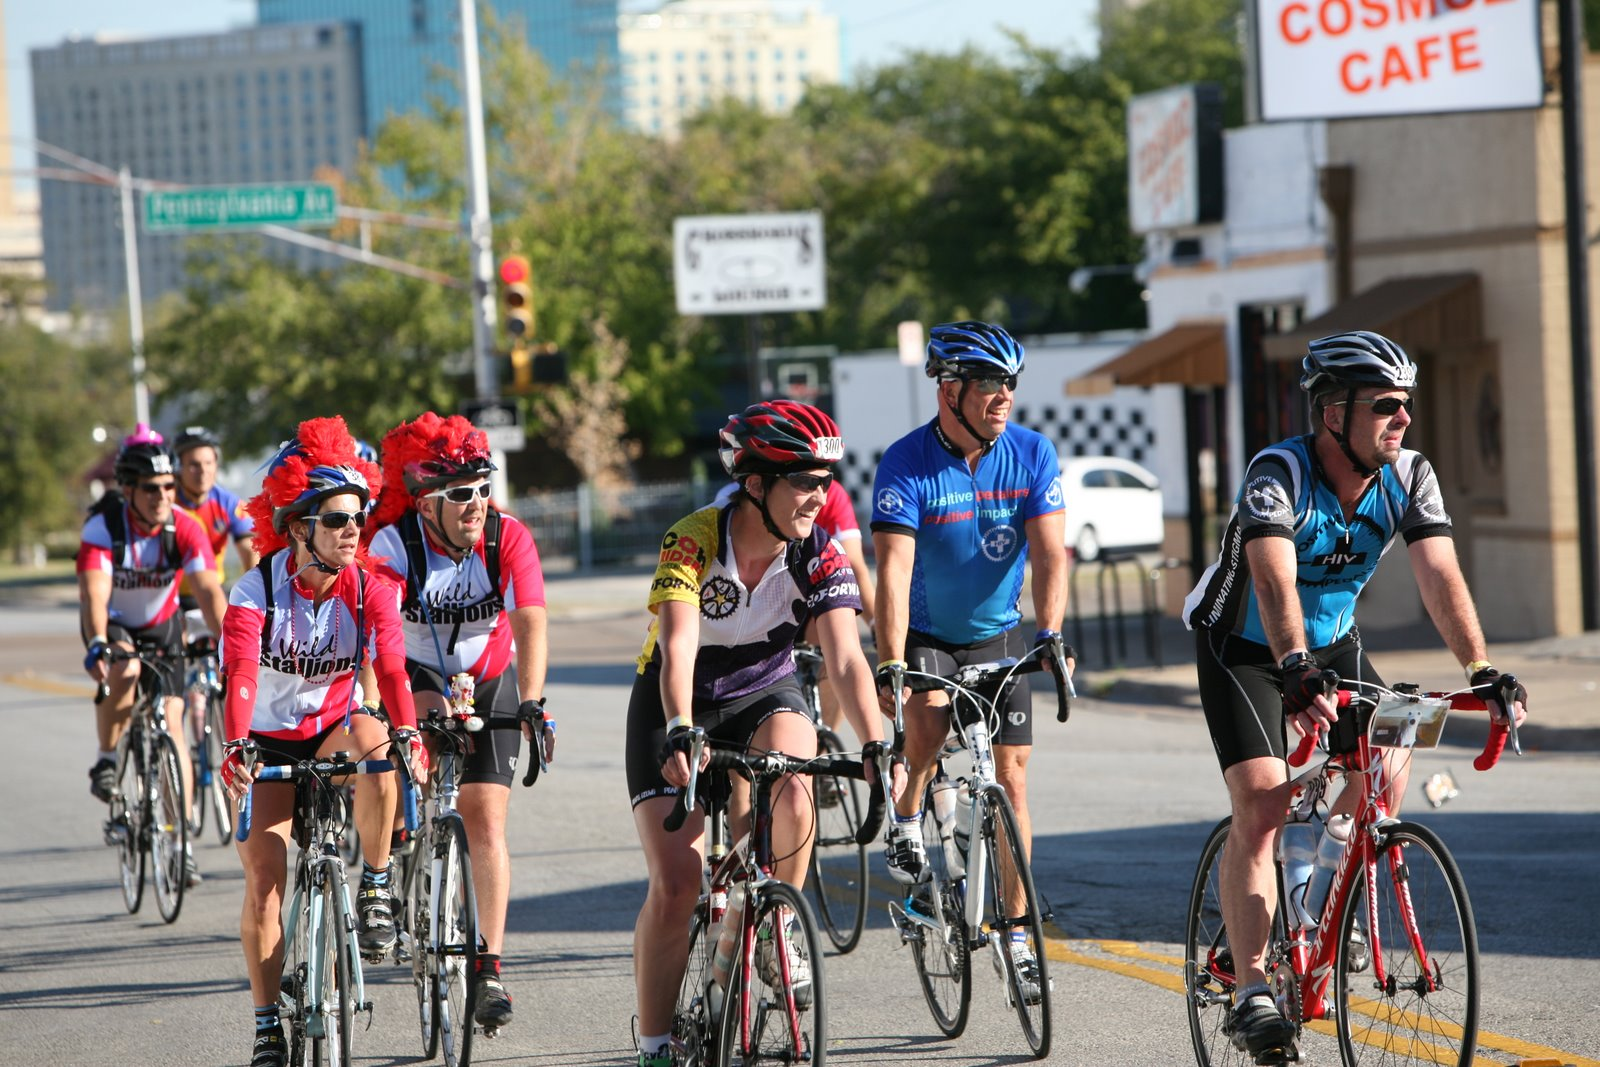 Microsoft challenges Lone Star Ride participants to raise at least $1,000